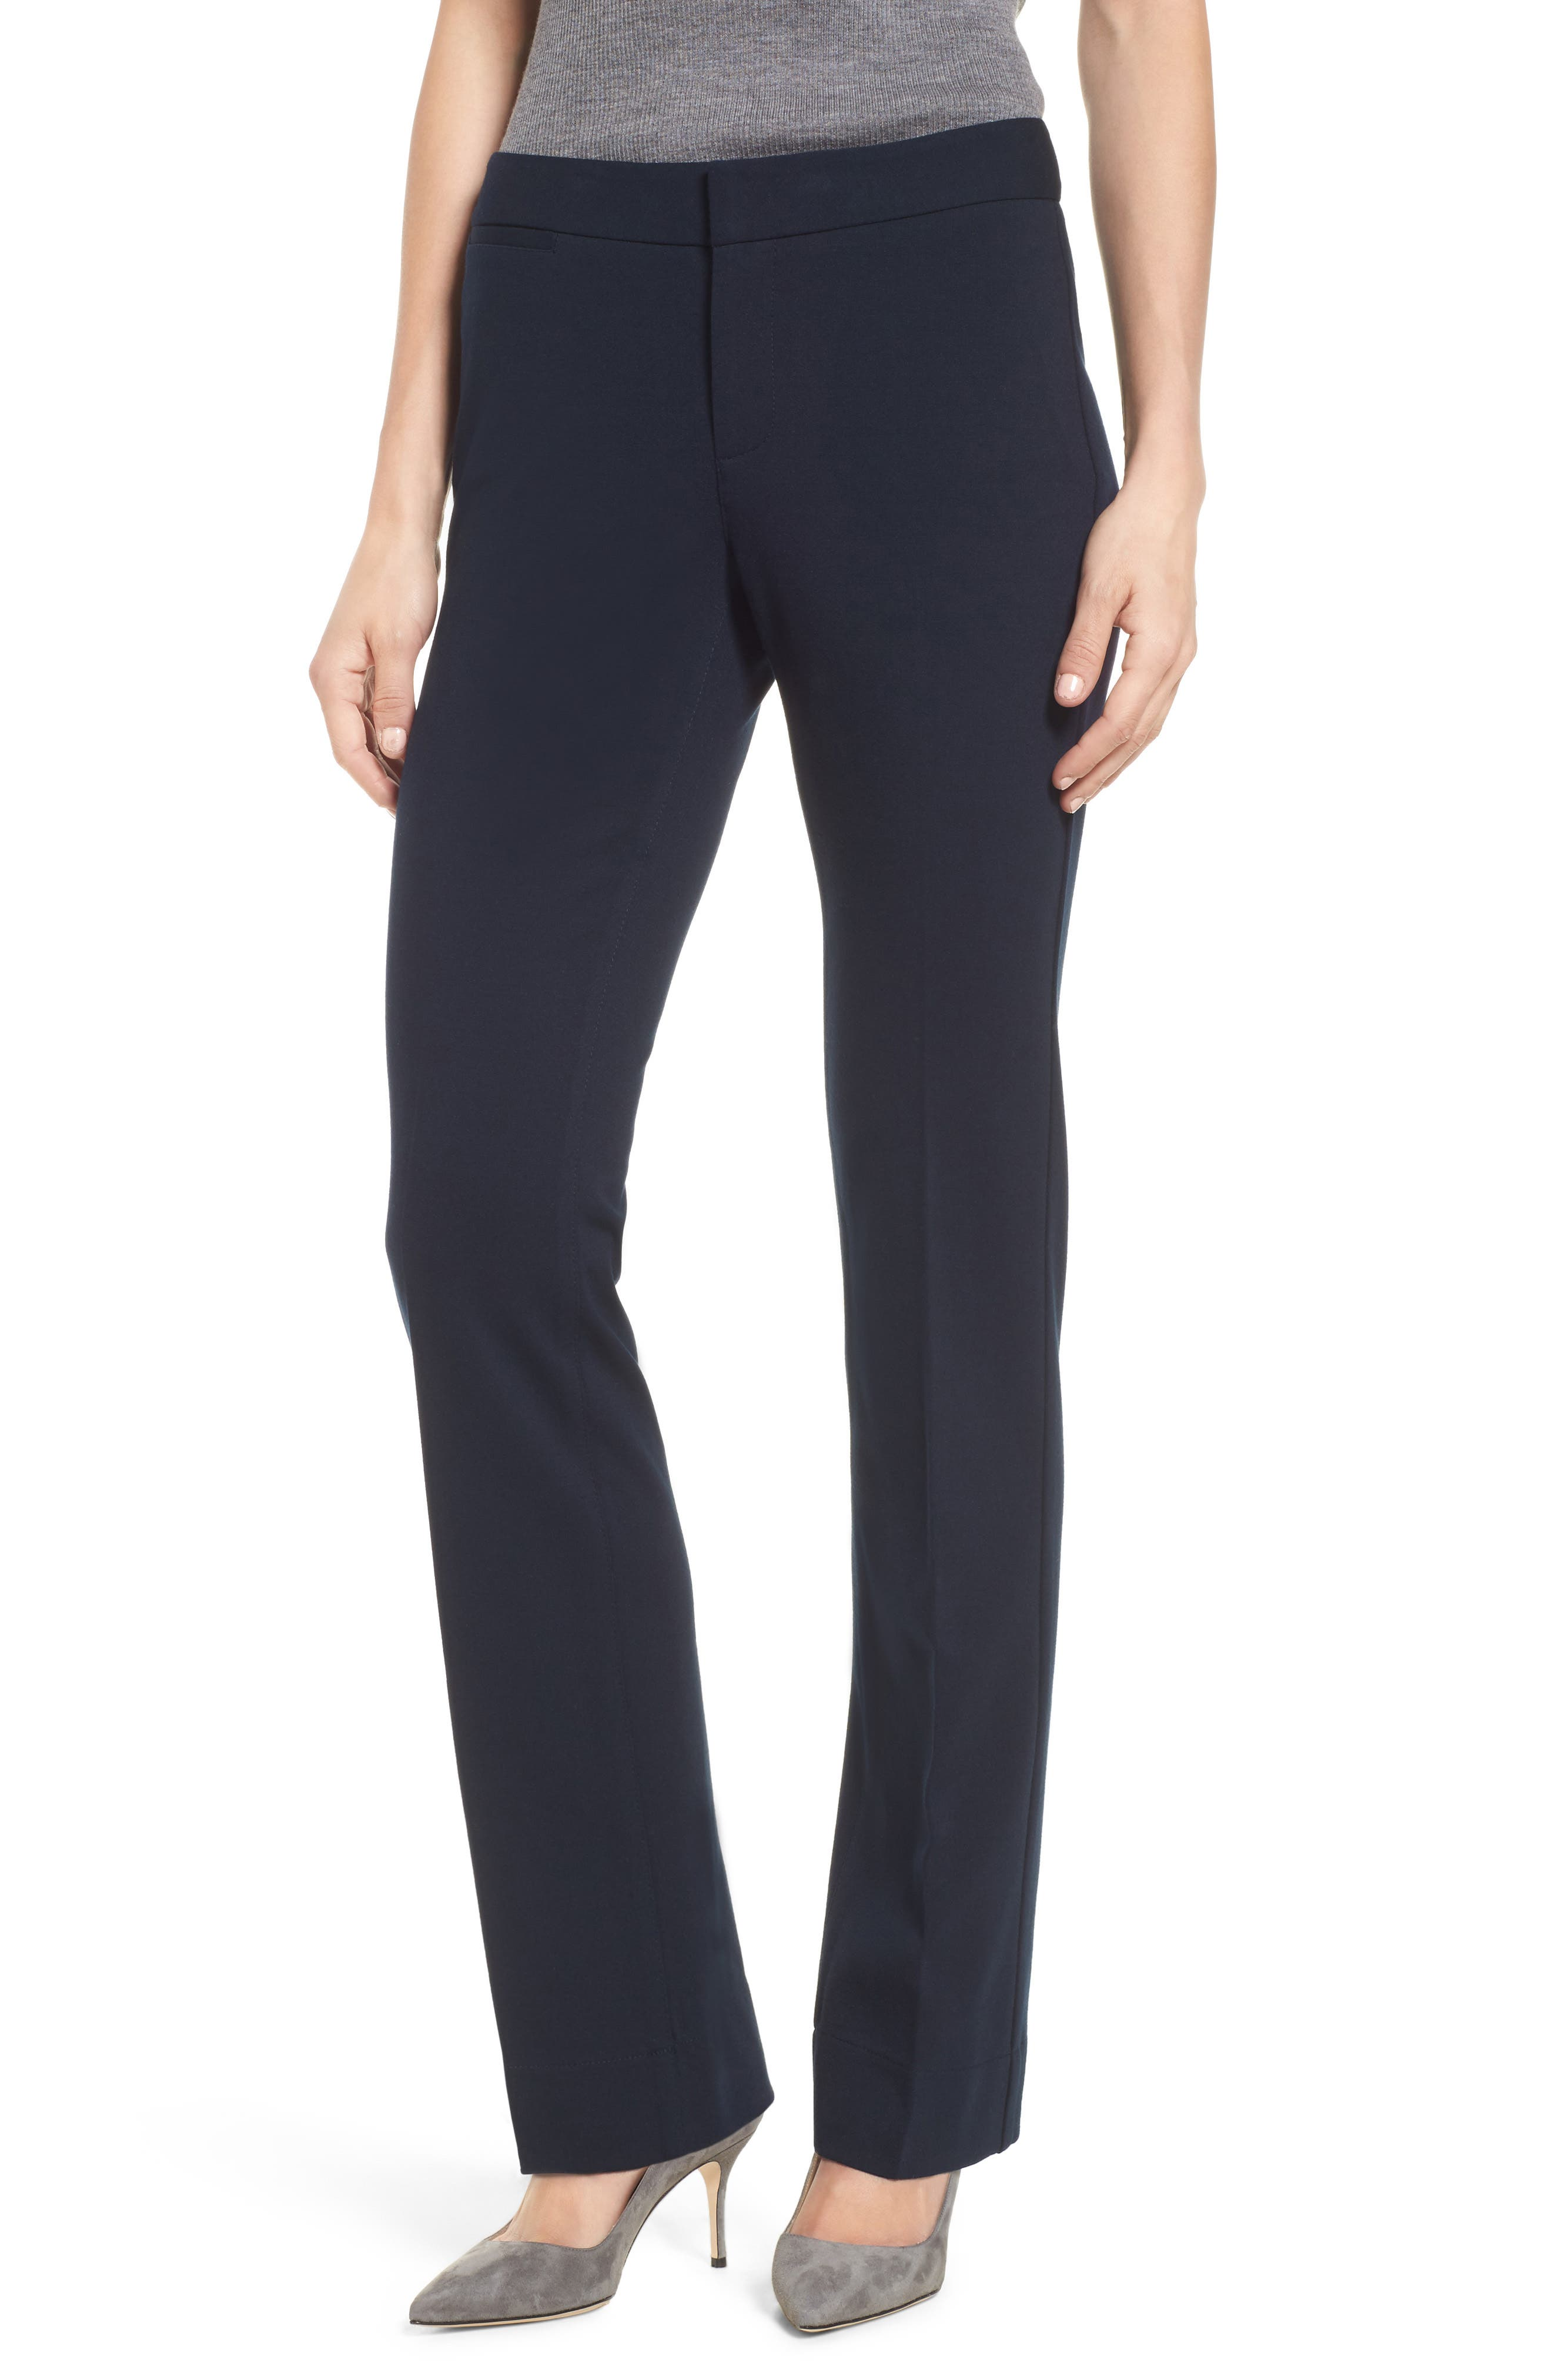 Main Image - NYDJ Stretch Knit Trousers (Regular & Petite)